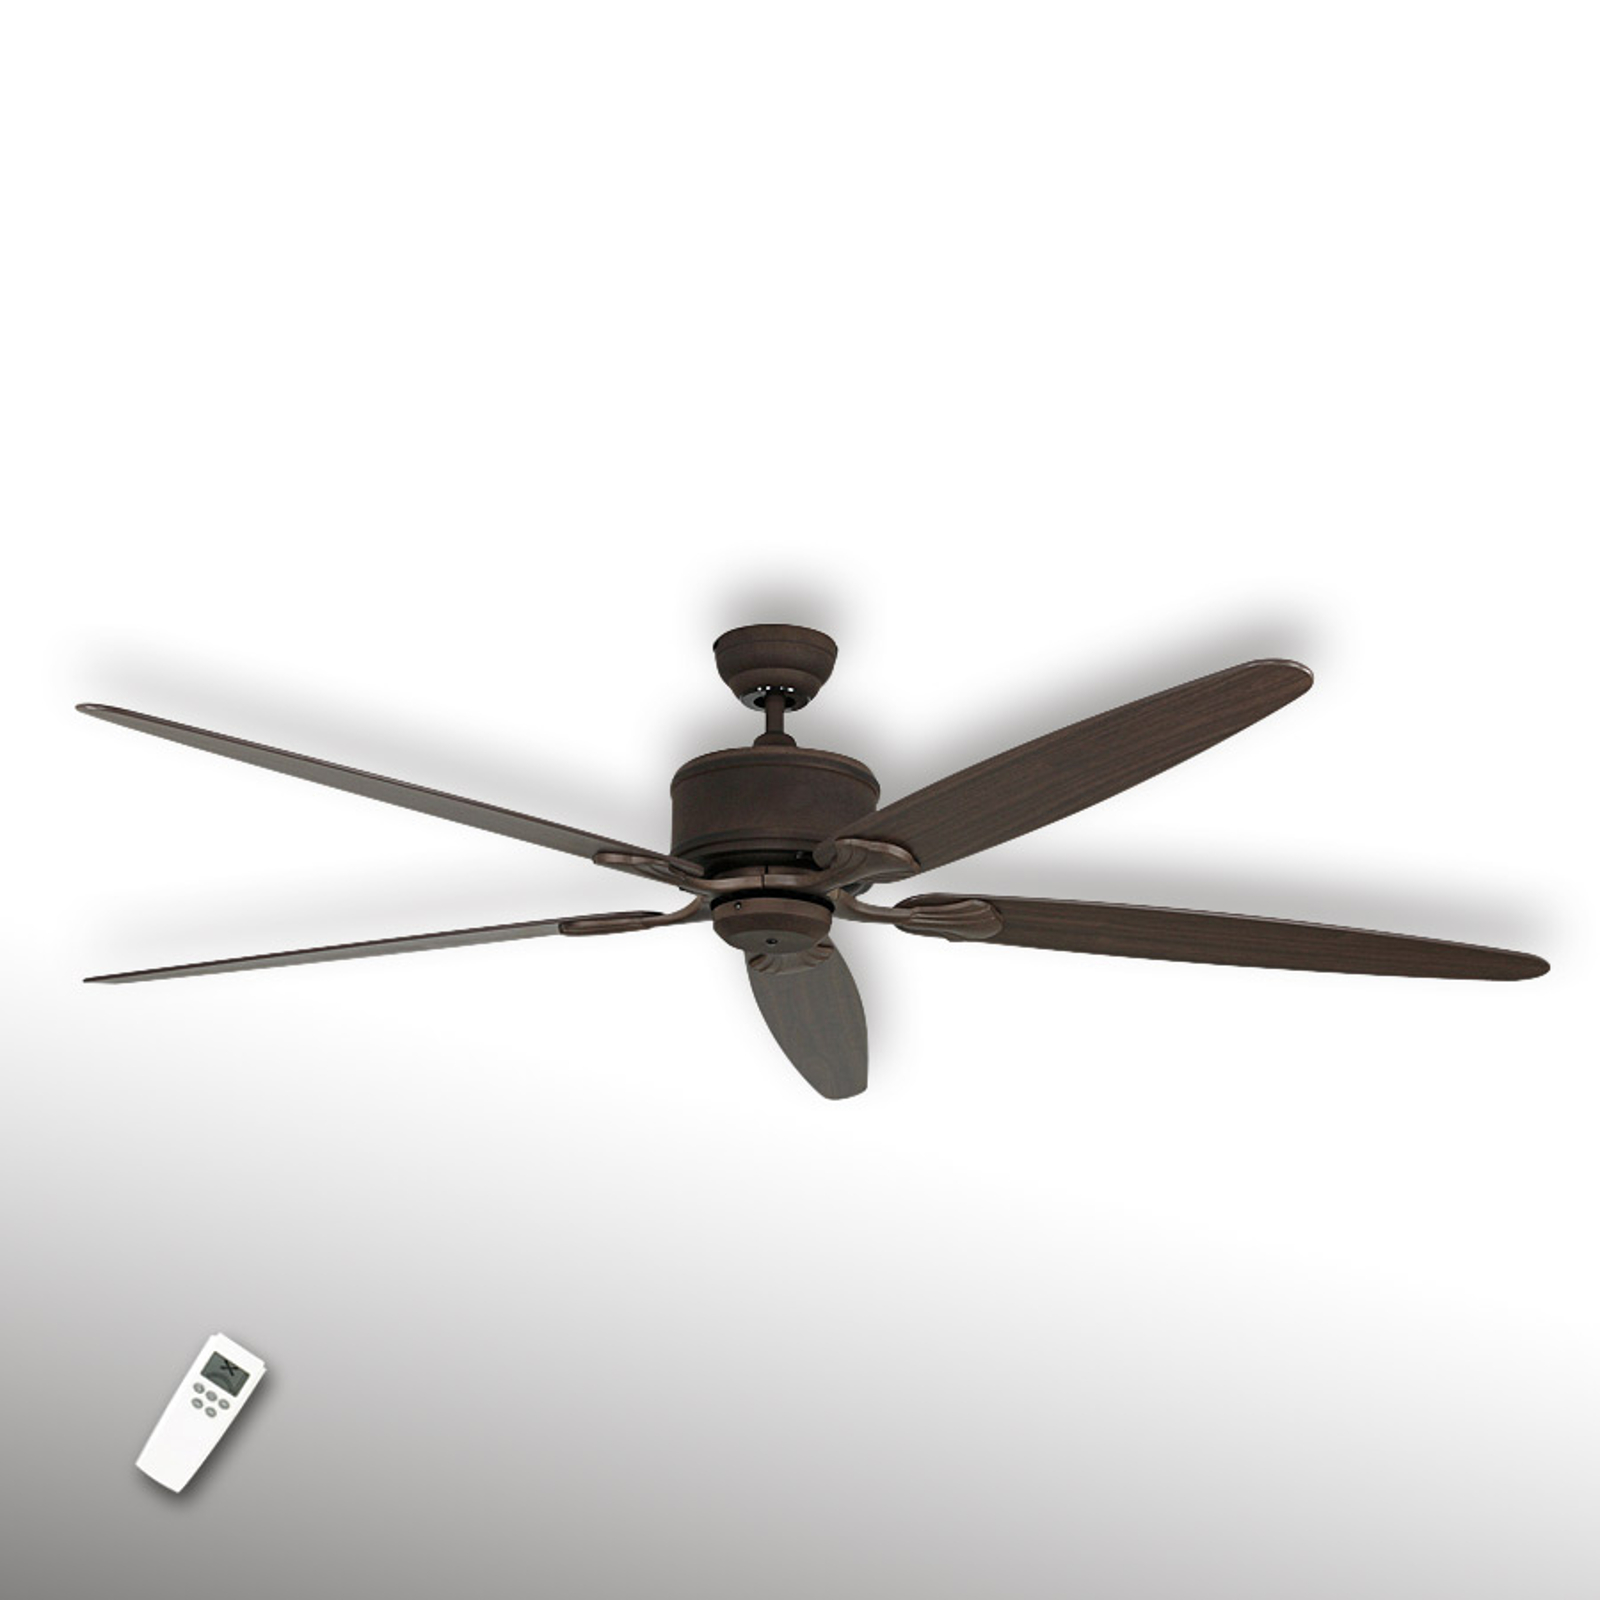 Five-blade ceiling fan Eco Elements brown_2015064_1